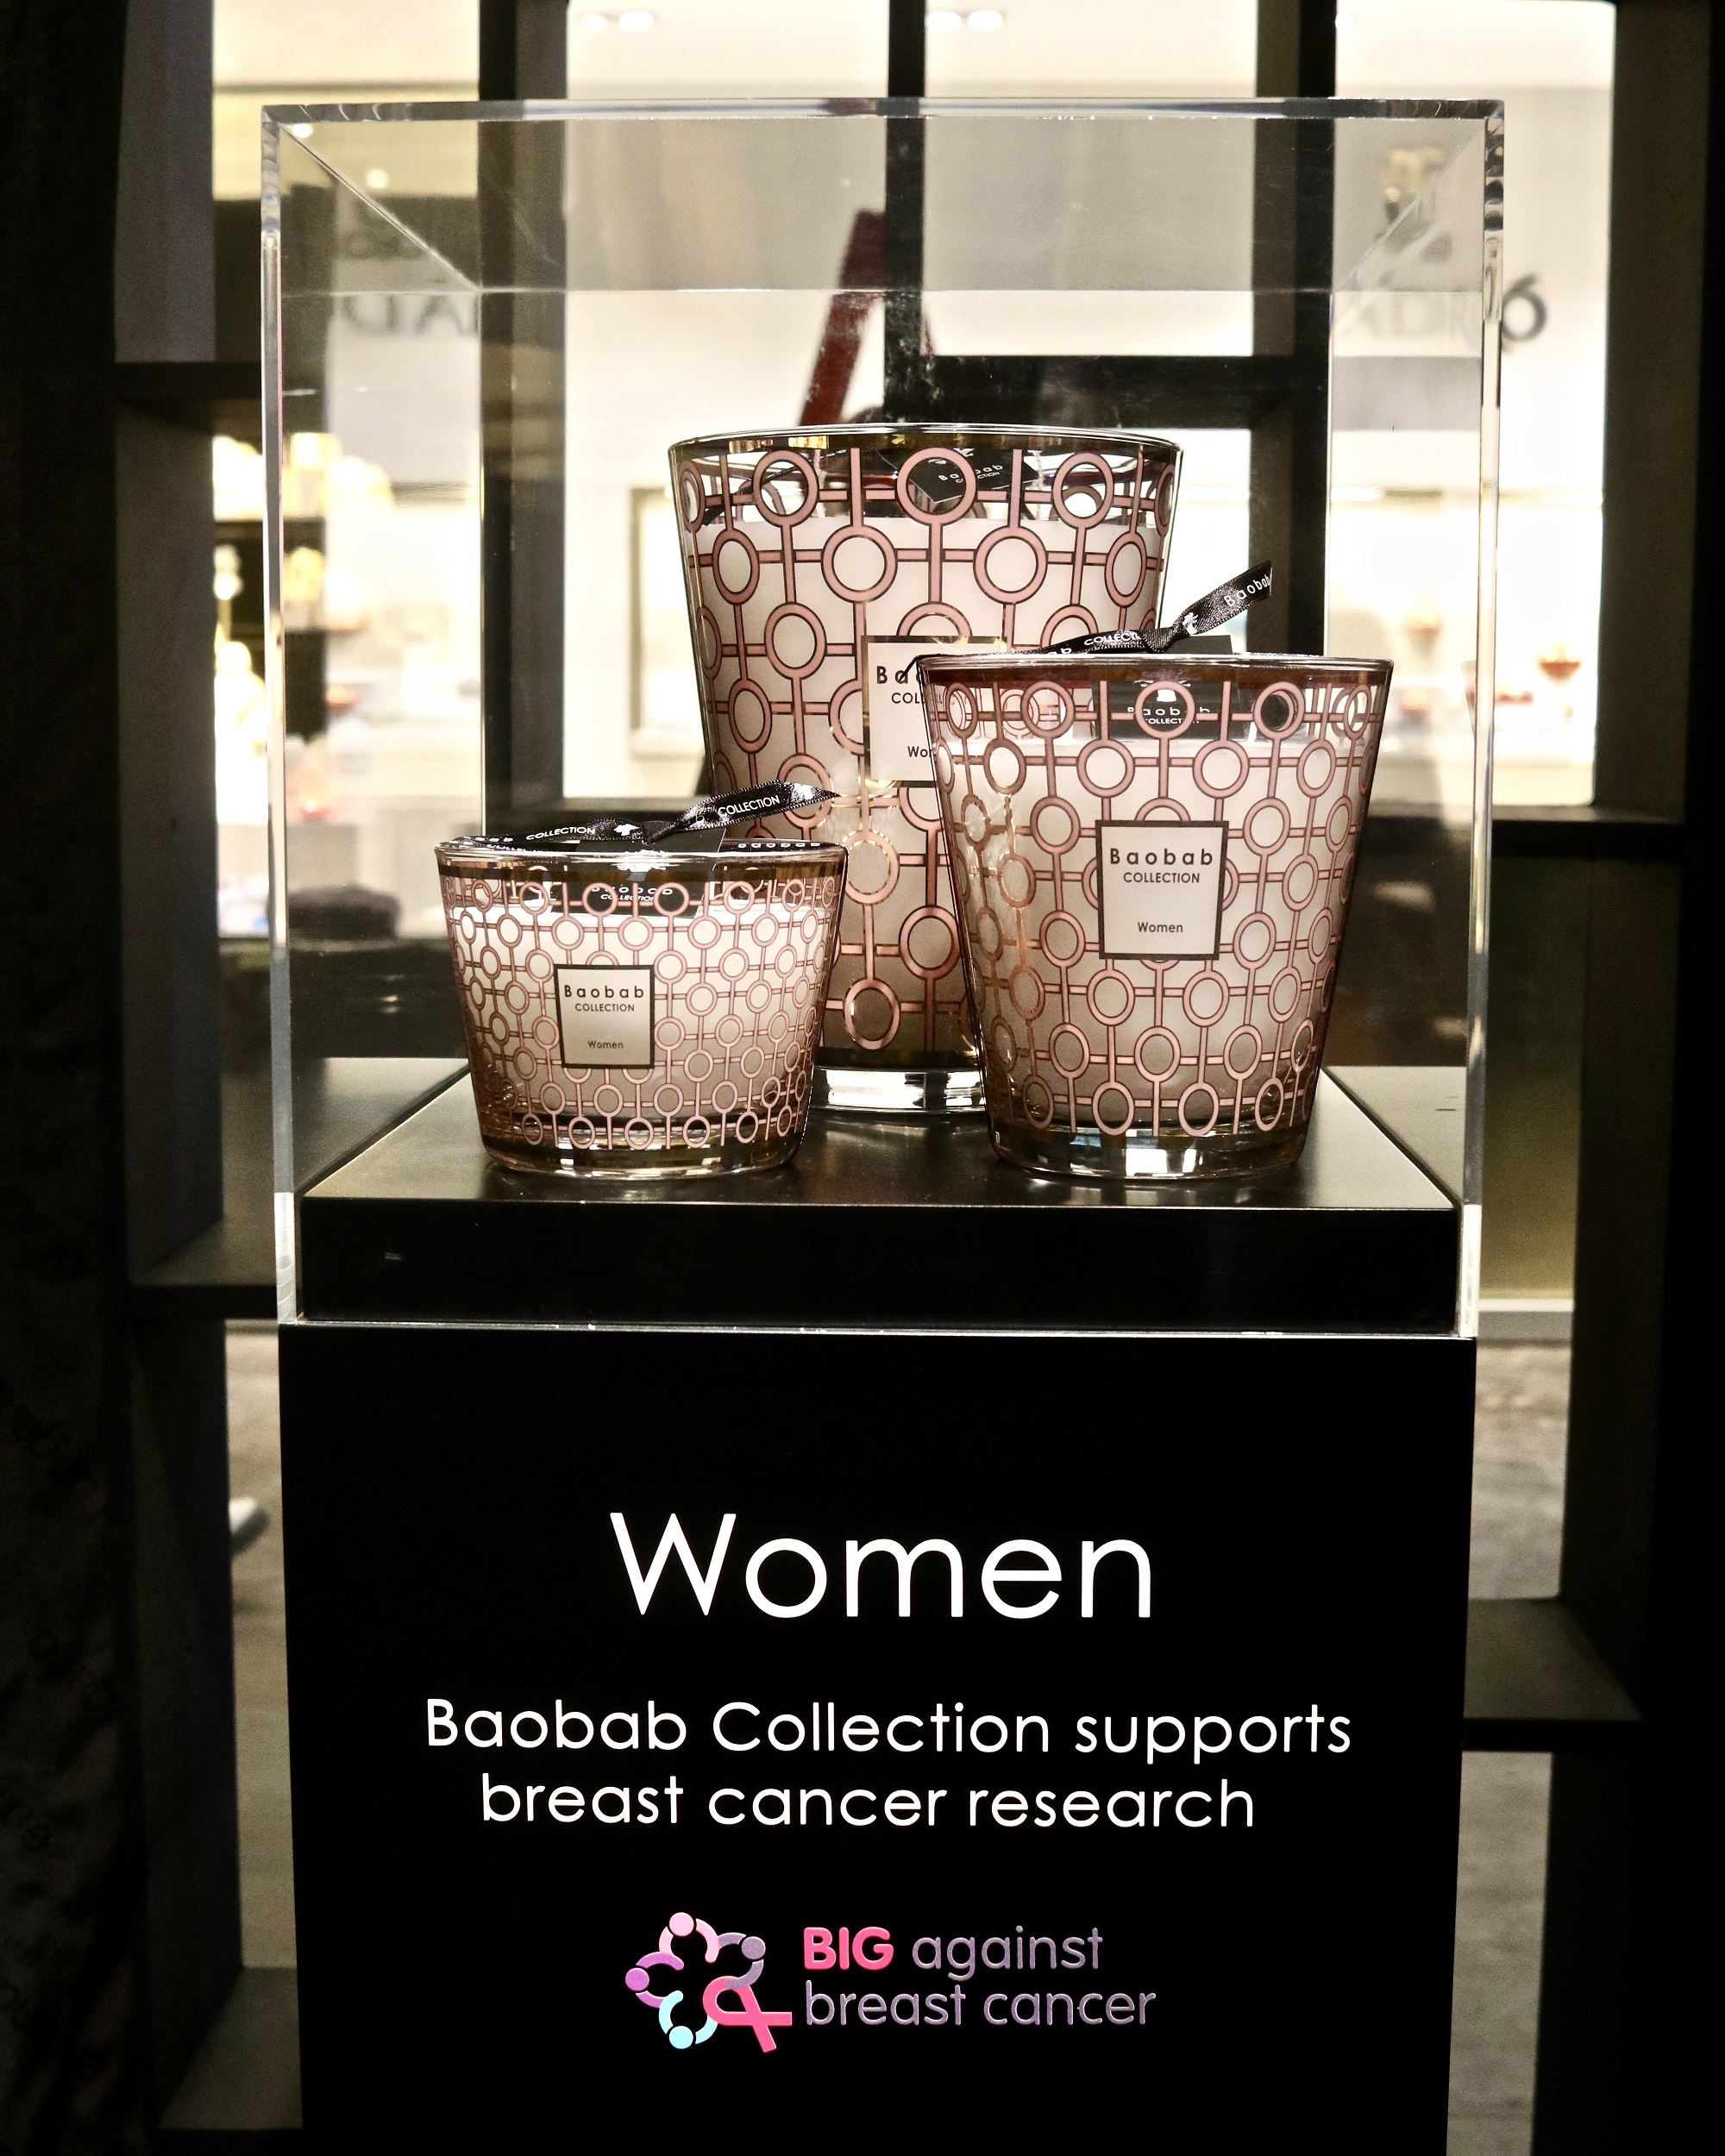 baobab collection s new candle supports breast cancer research. Black Bedroom Furniture Sets. Home Design Ideas